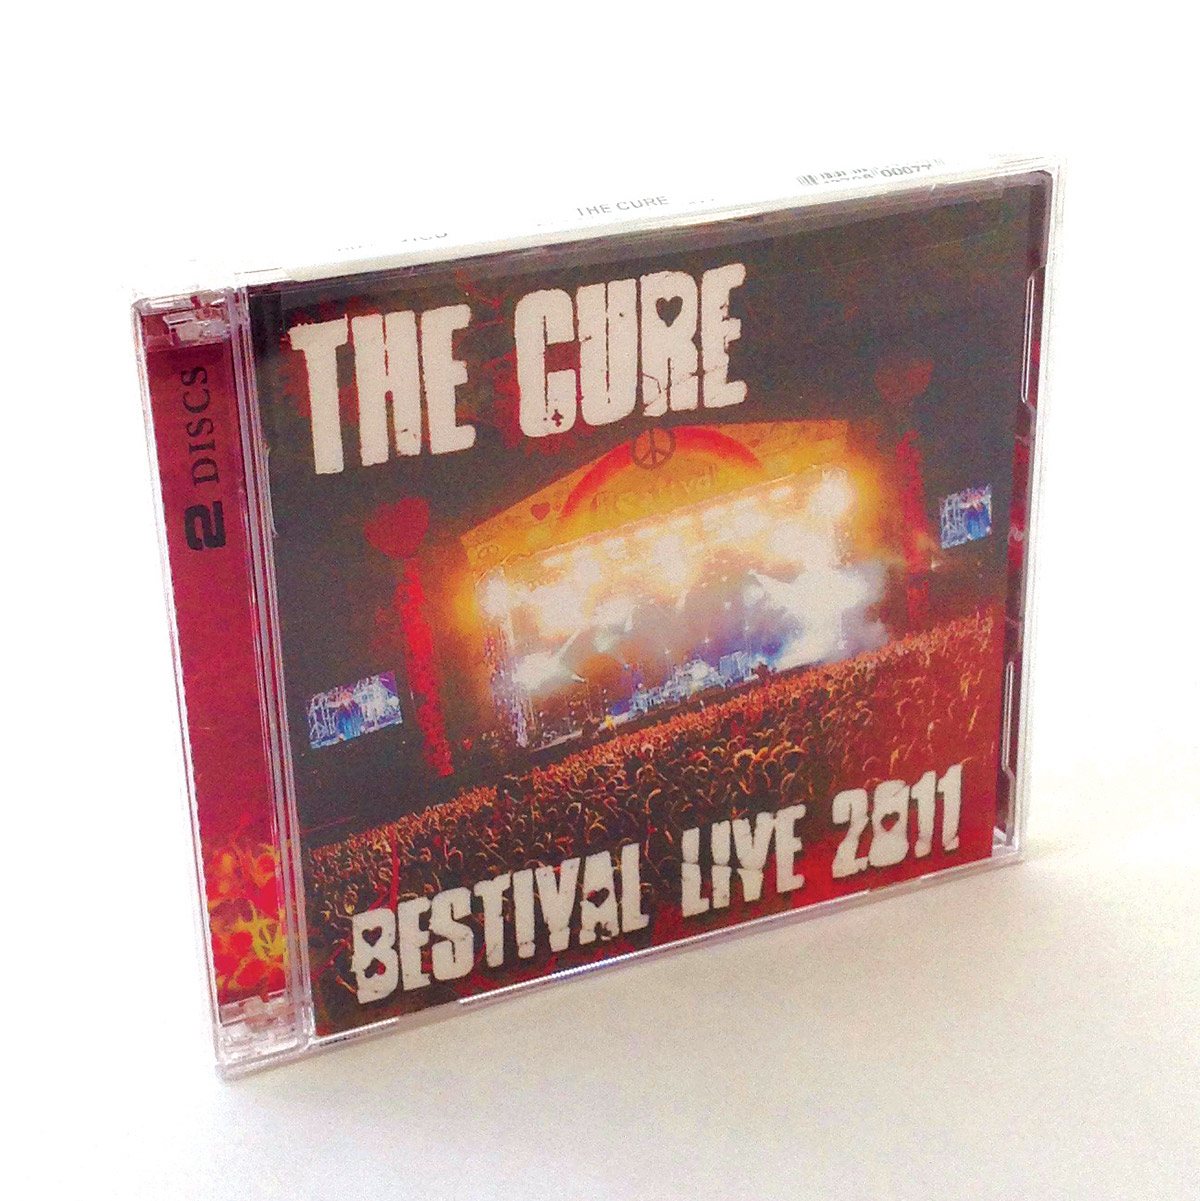 The Cure Double Jewel - Affordable CD / Compact Disc Replication